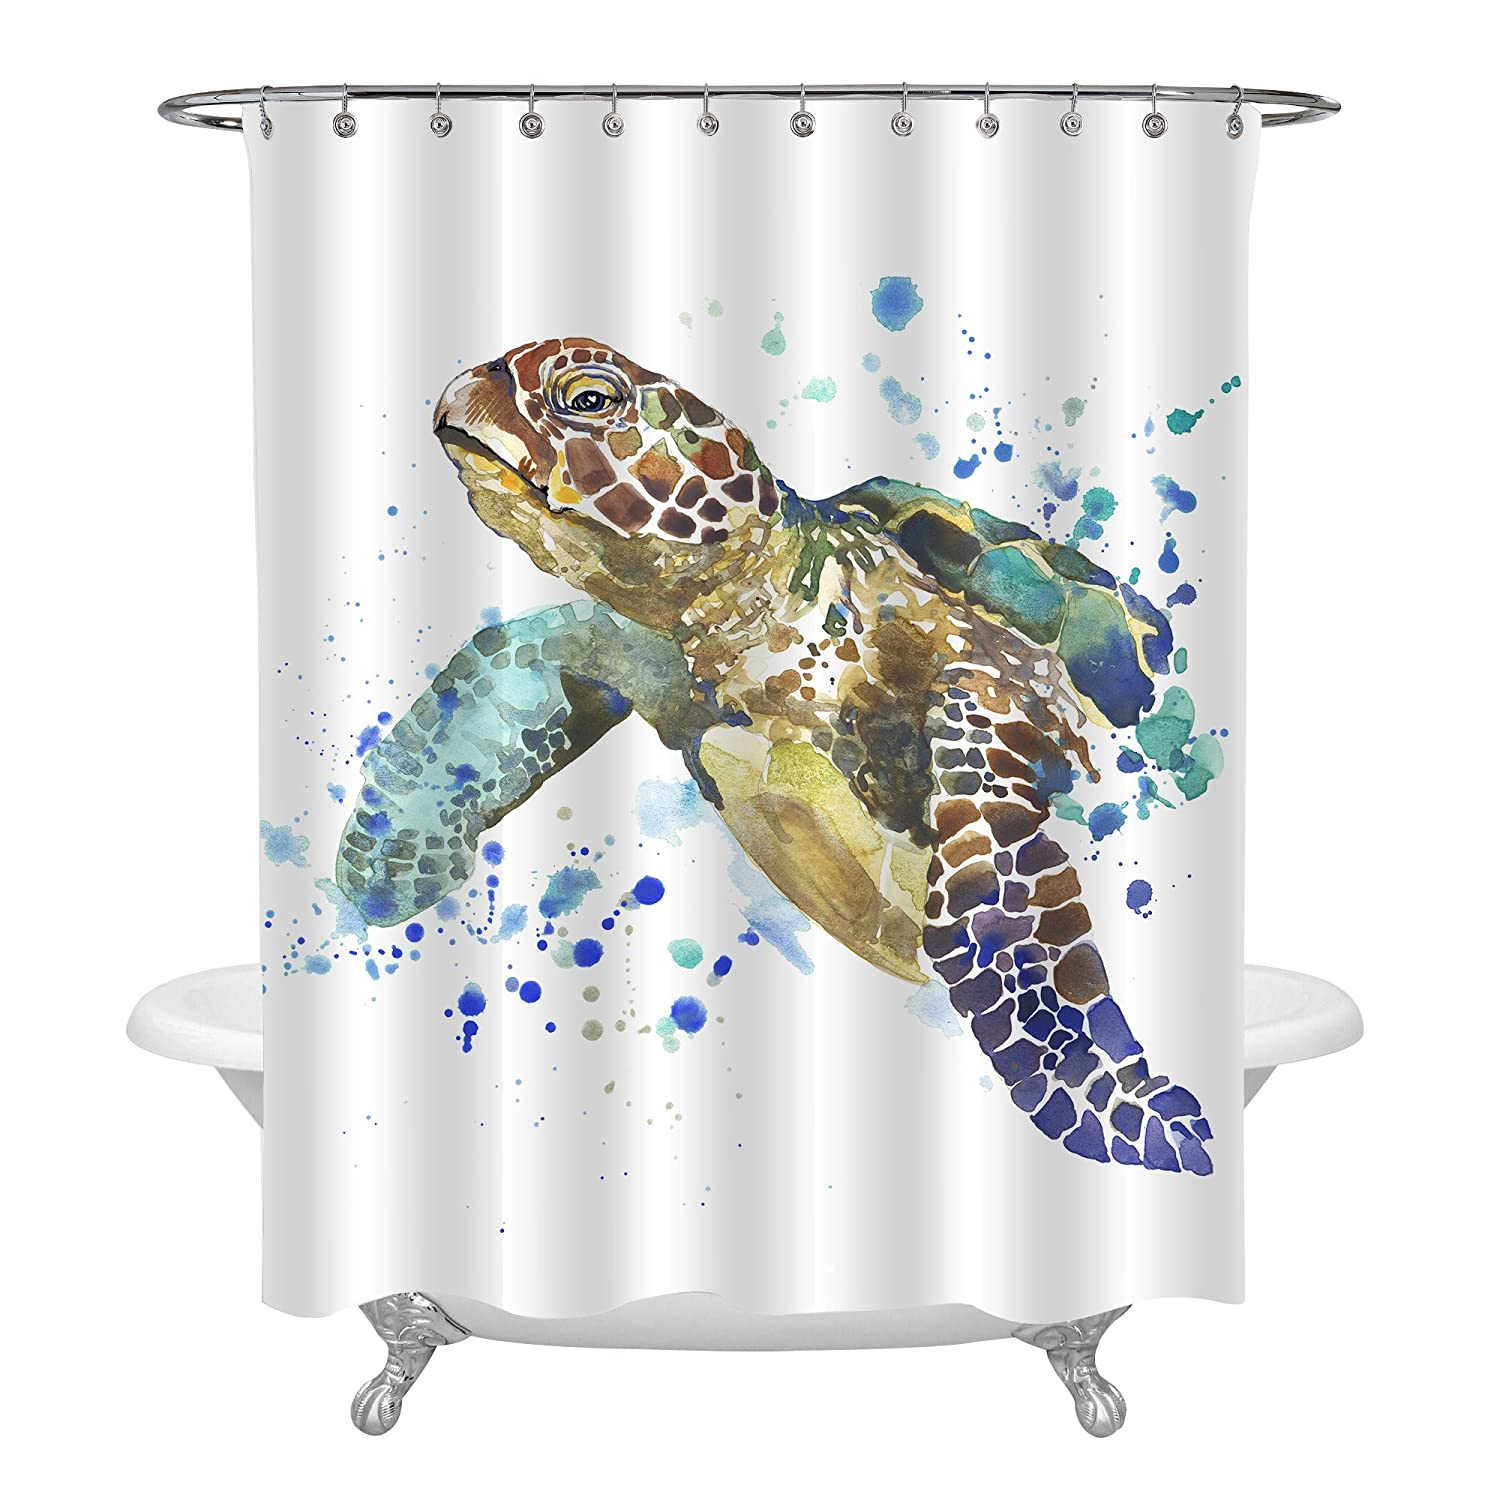 MitoVilla Antique Sea Turtle Shower Curtain Set With Hooks Splash Watercolor Underwater World Animal Swimming In Ocean Bathroom Accessories